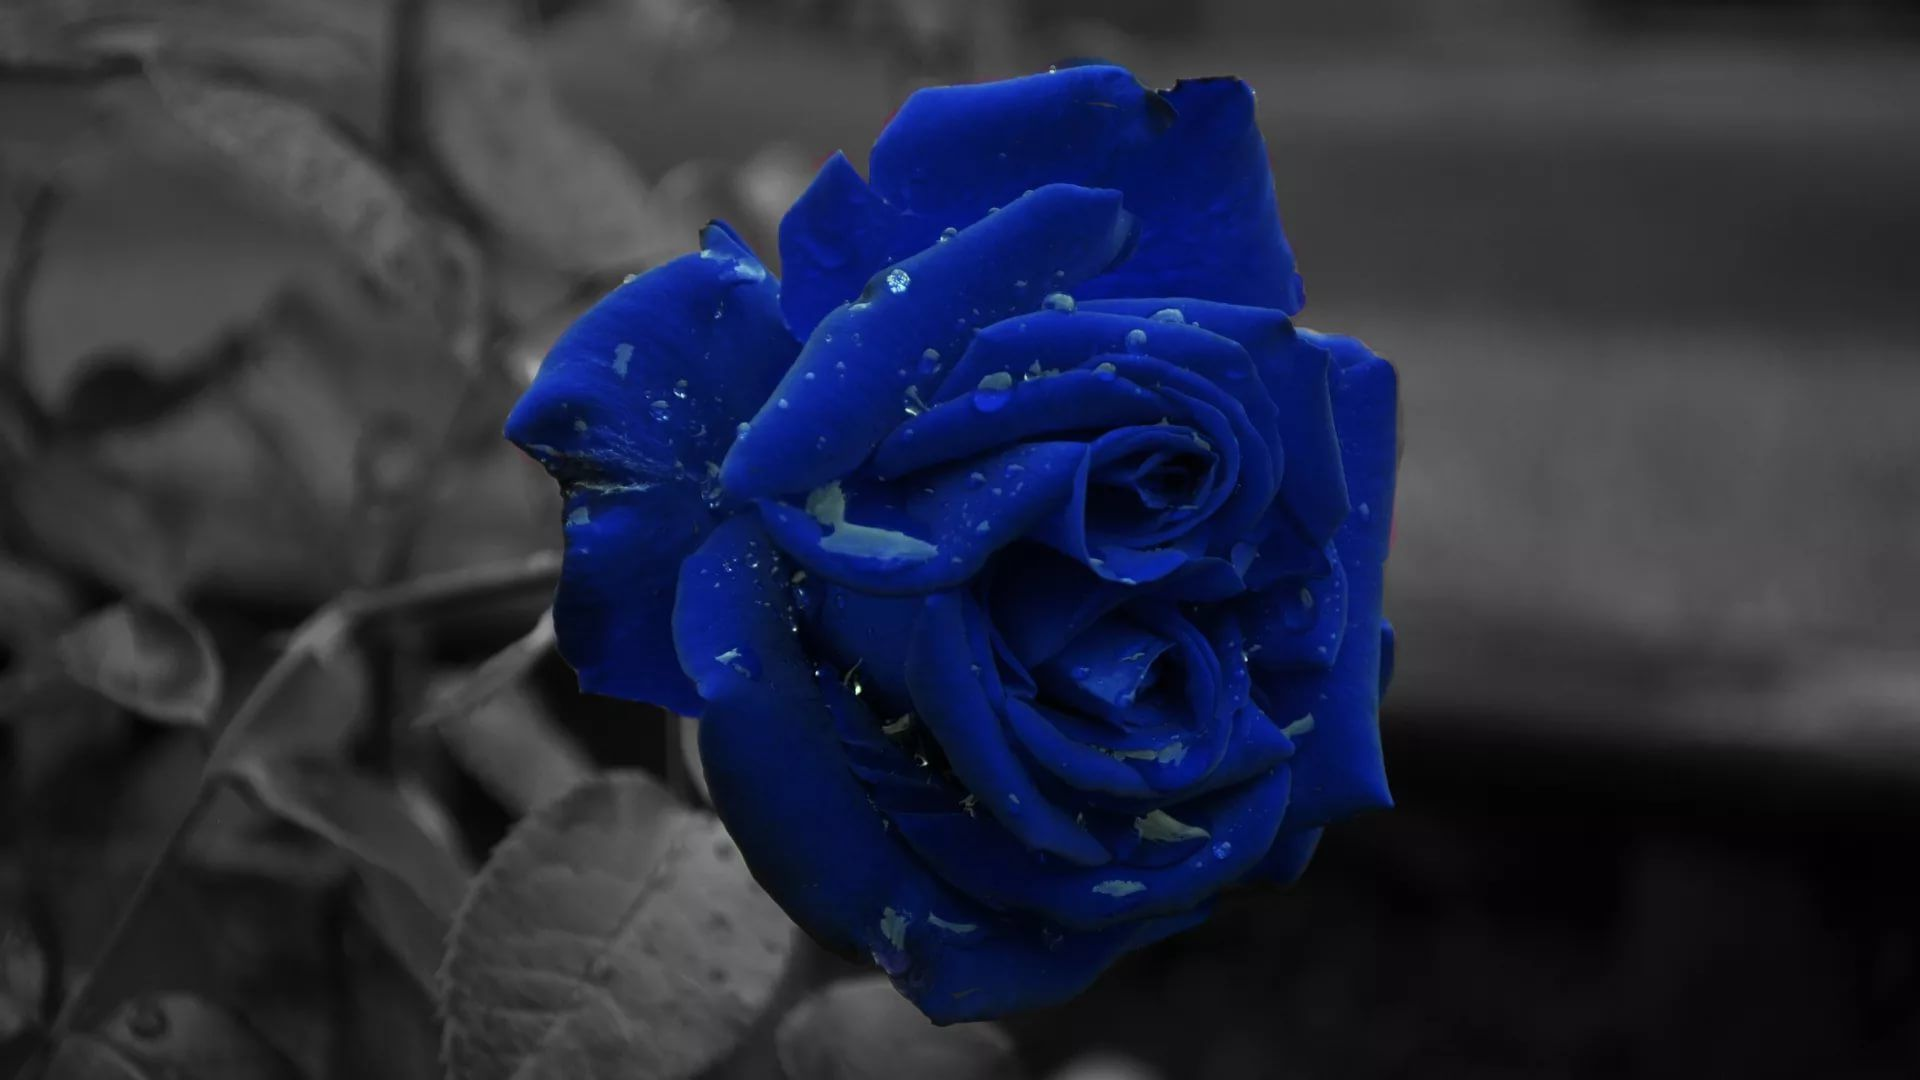 Blue Rose Full HD Wallpaper